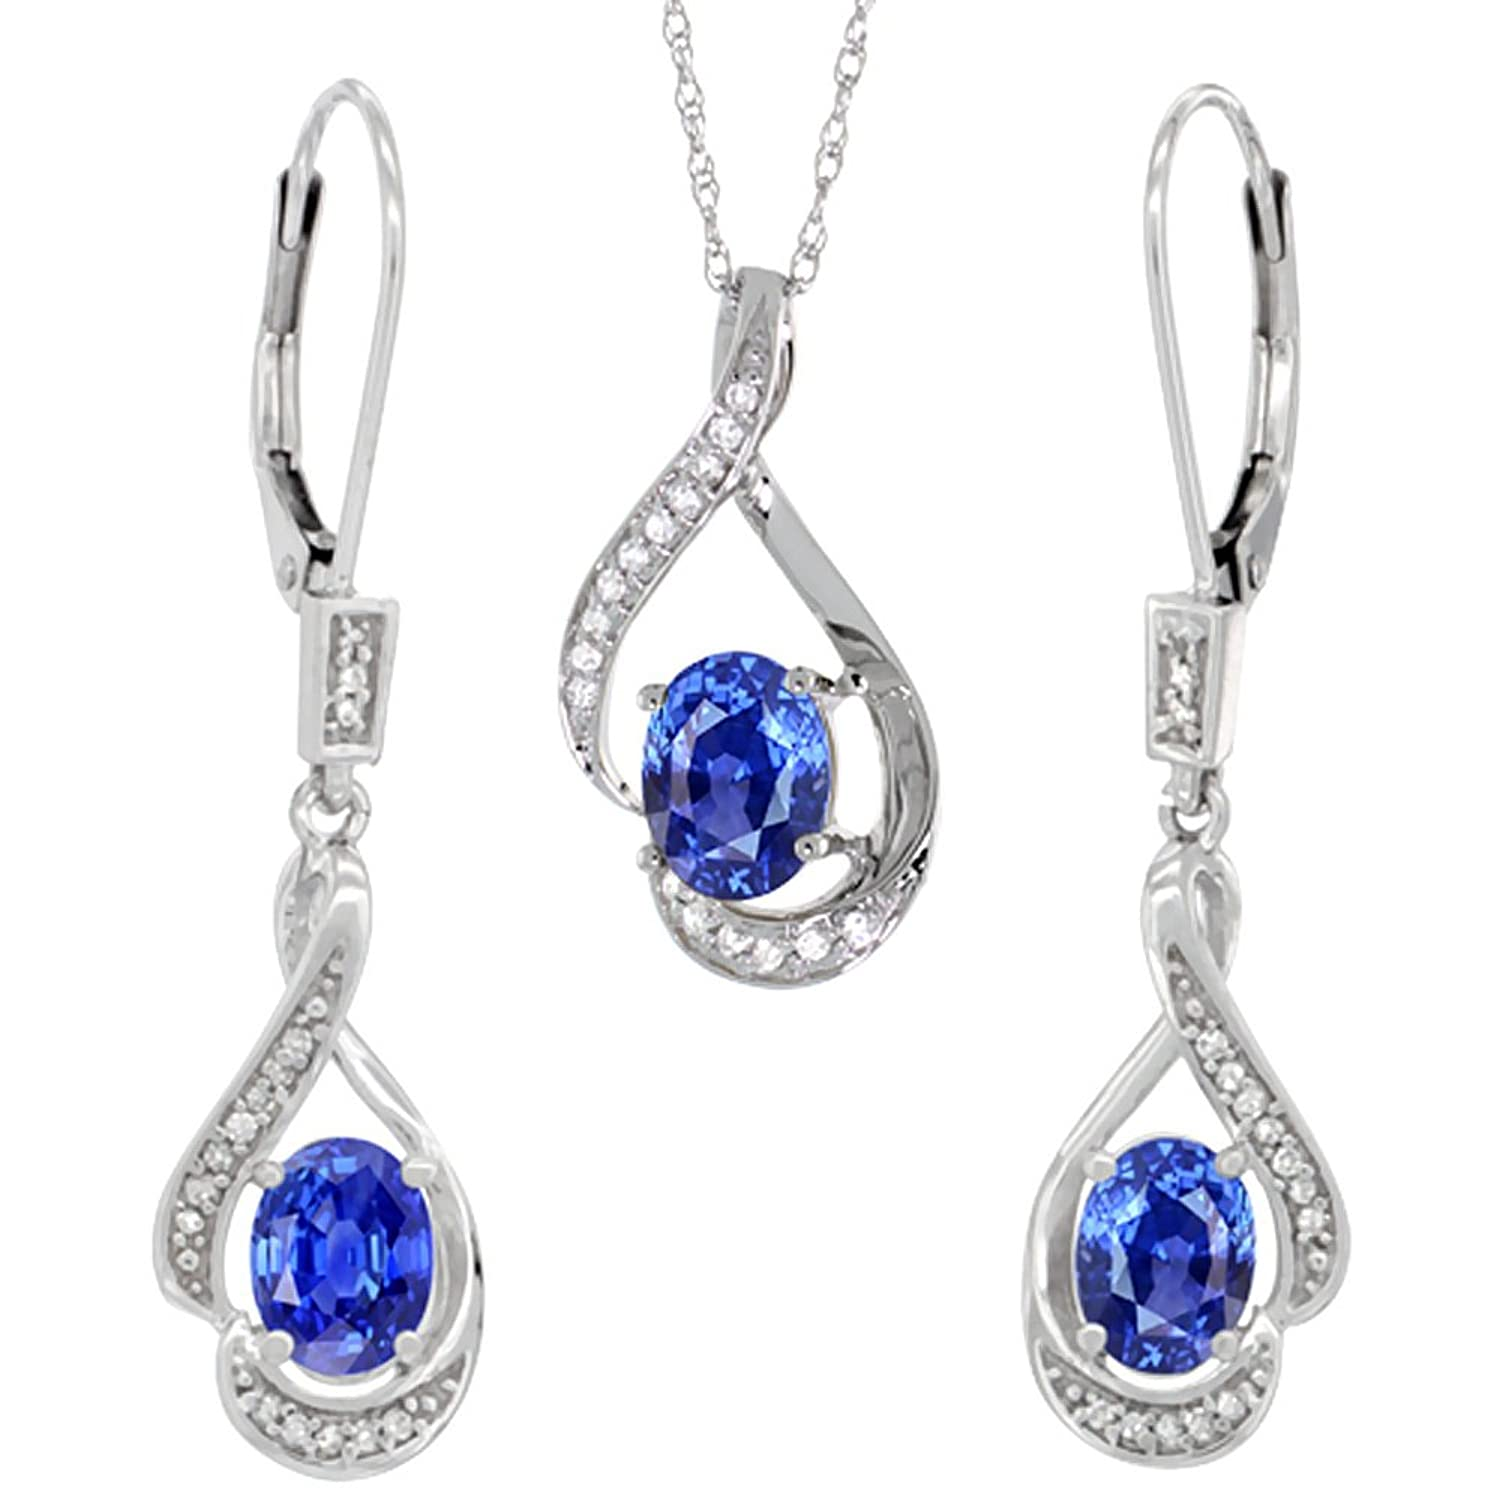 14K White Gold Diamond Natural Blue Sapphire Lever Back Earrings & Necklace Set Oval 7x5mm, 18 inch long